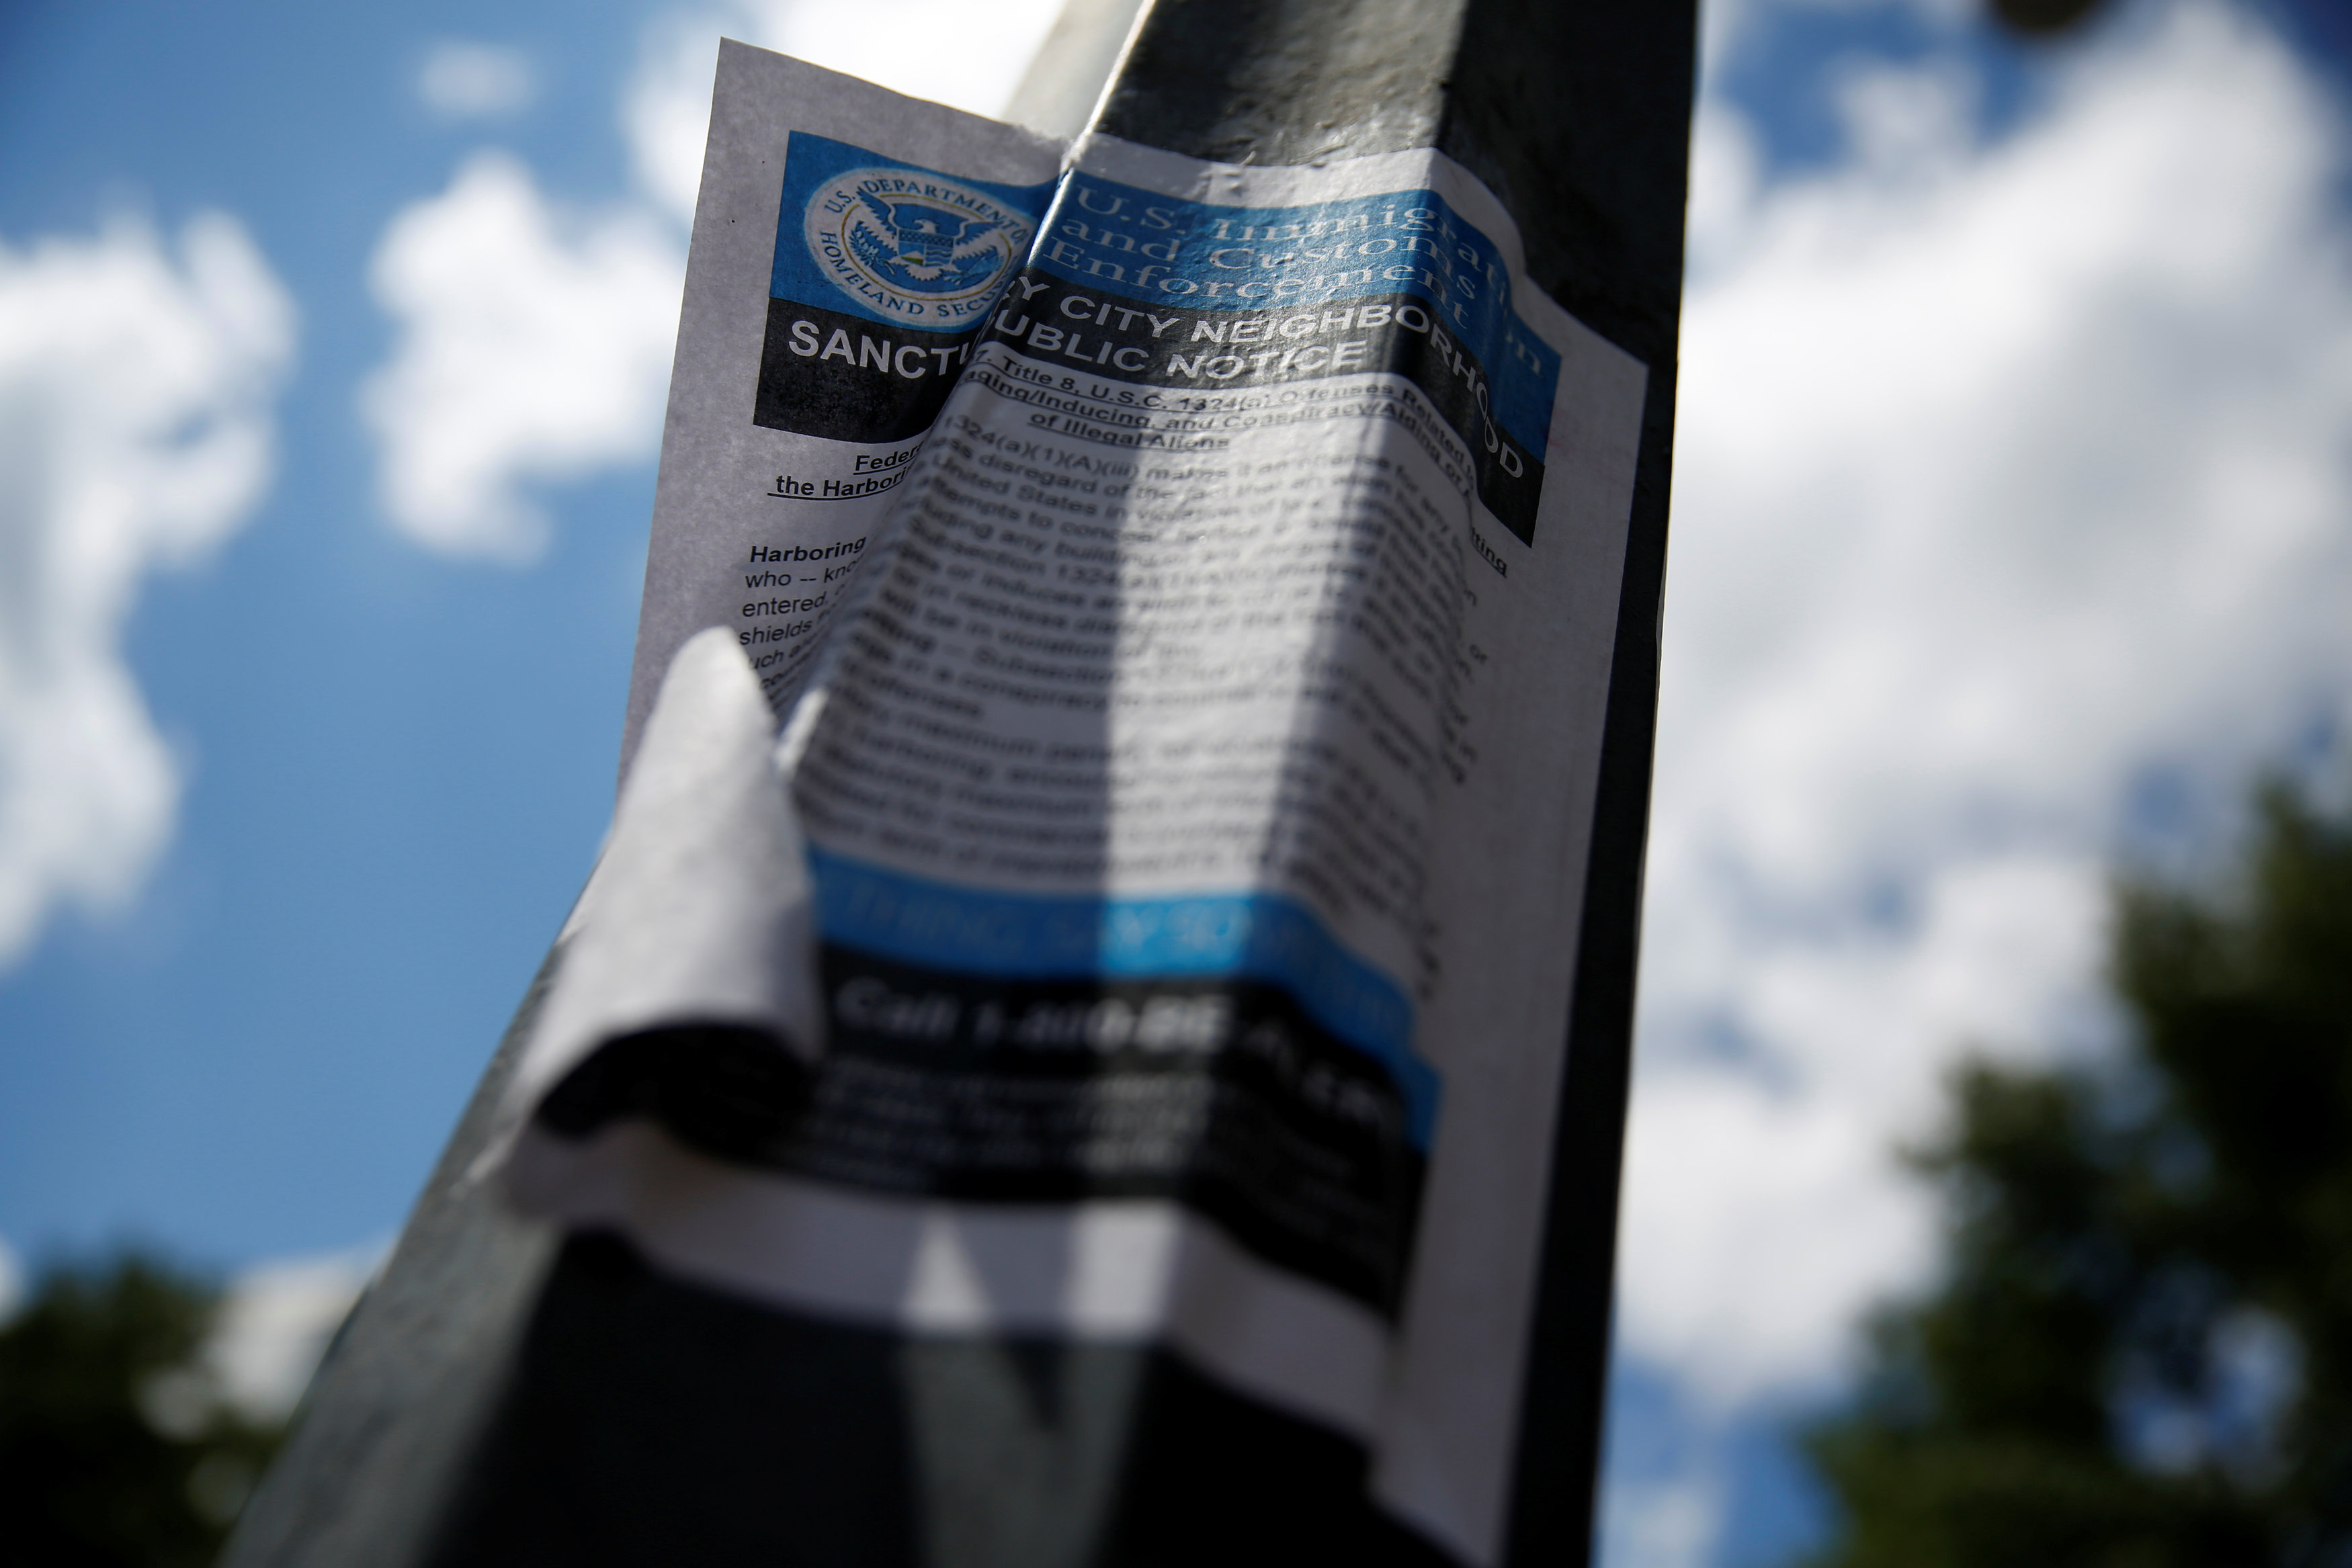 Fake government flyers urging Washington residents to turn in illegal immigrants, which city and federal officials denounced as inciting fear, are posted in Washington, U.S. June 1, 2017. REUTERS/Jonathan Ernst